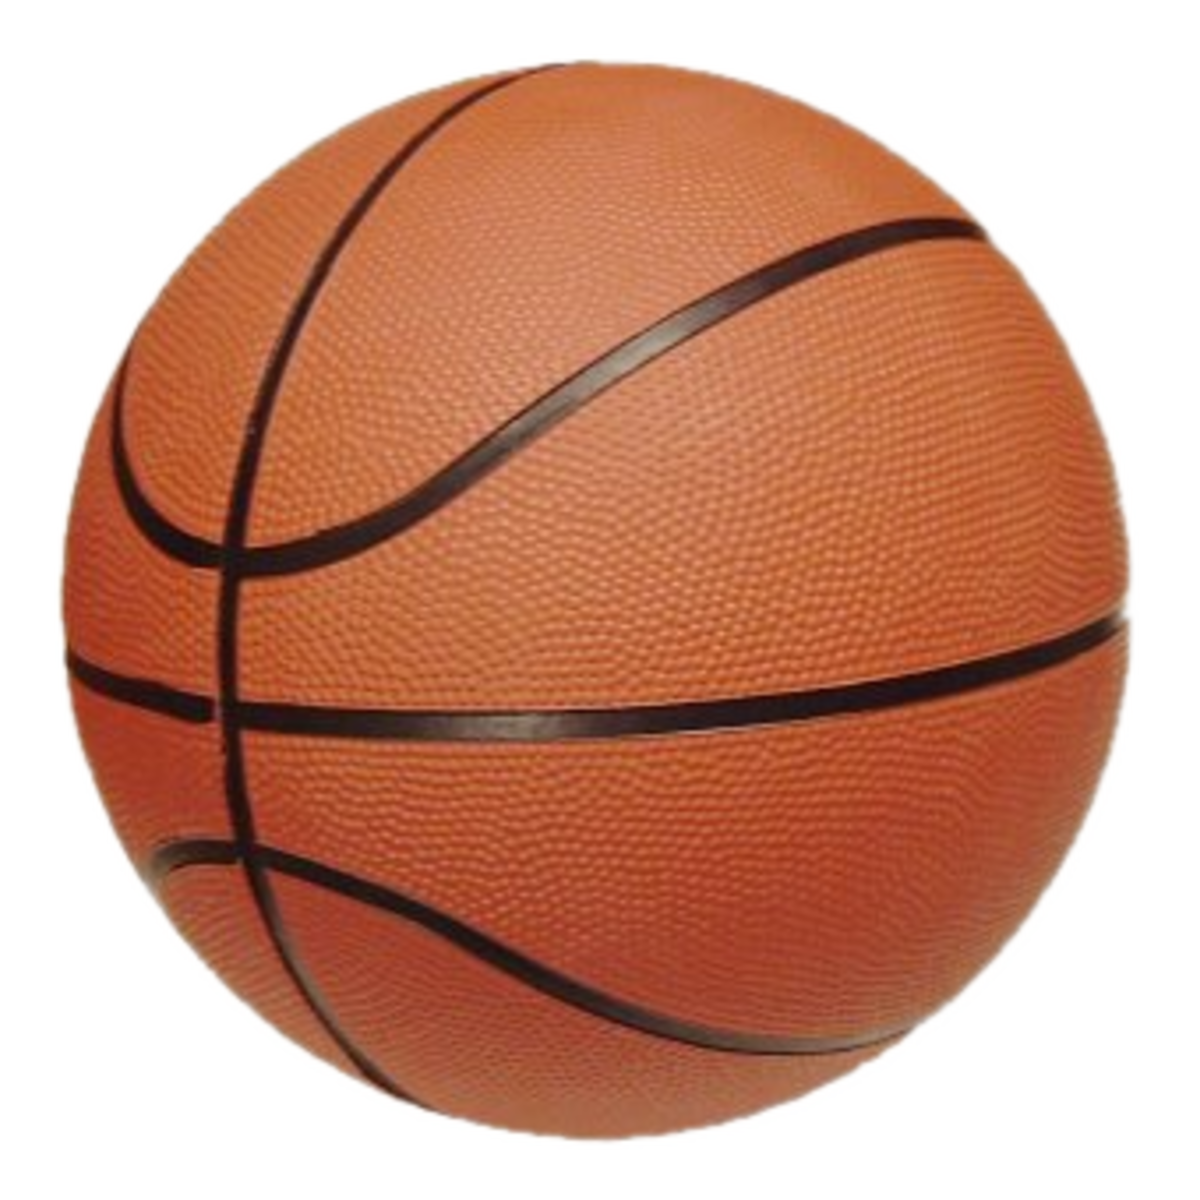 Another cupped commemorative coin, this one depicting a basketball, may bounce into the coin market in 2019.